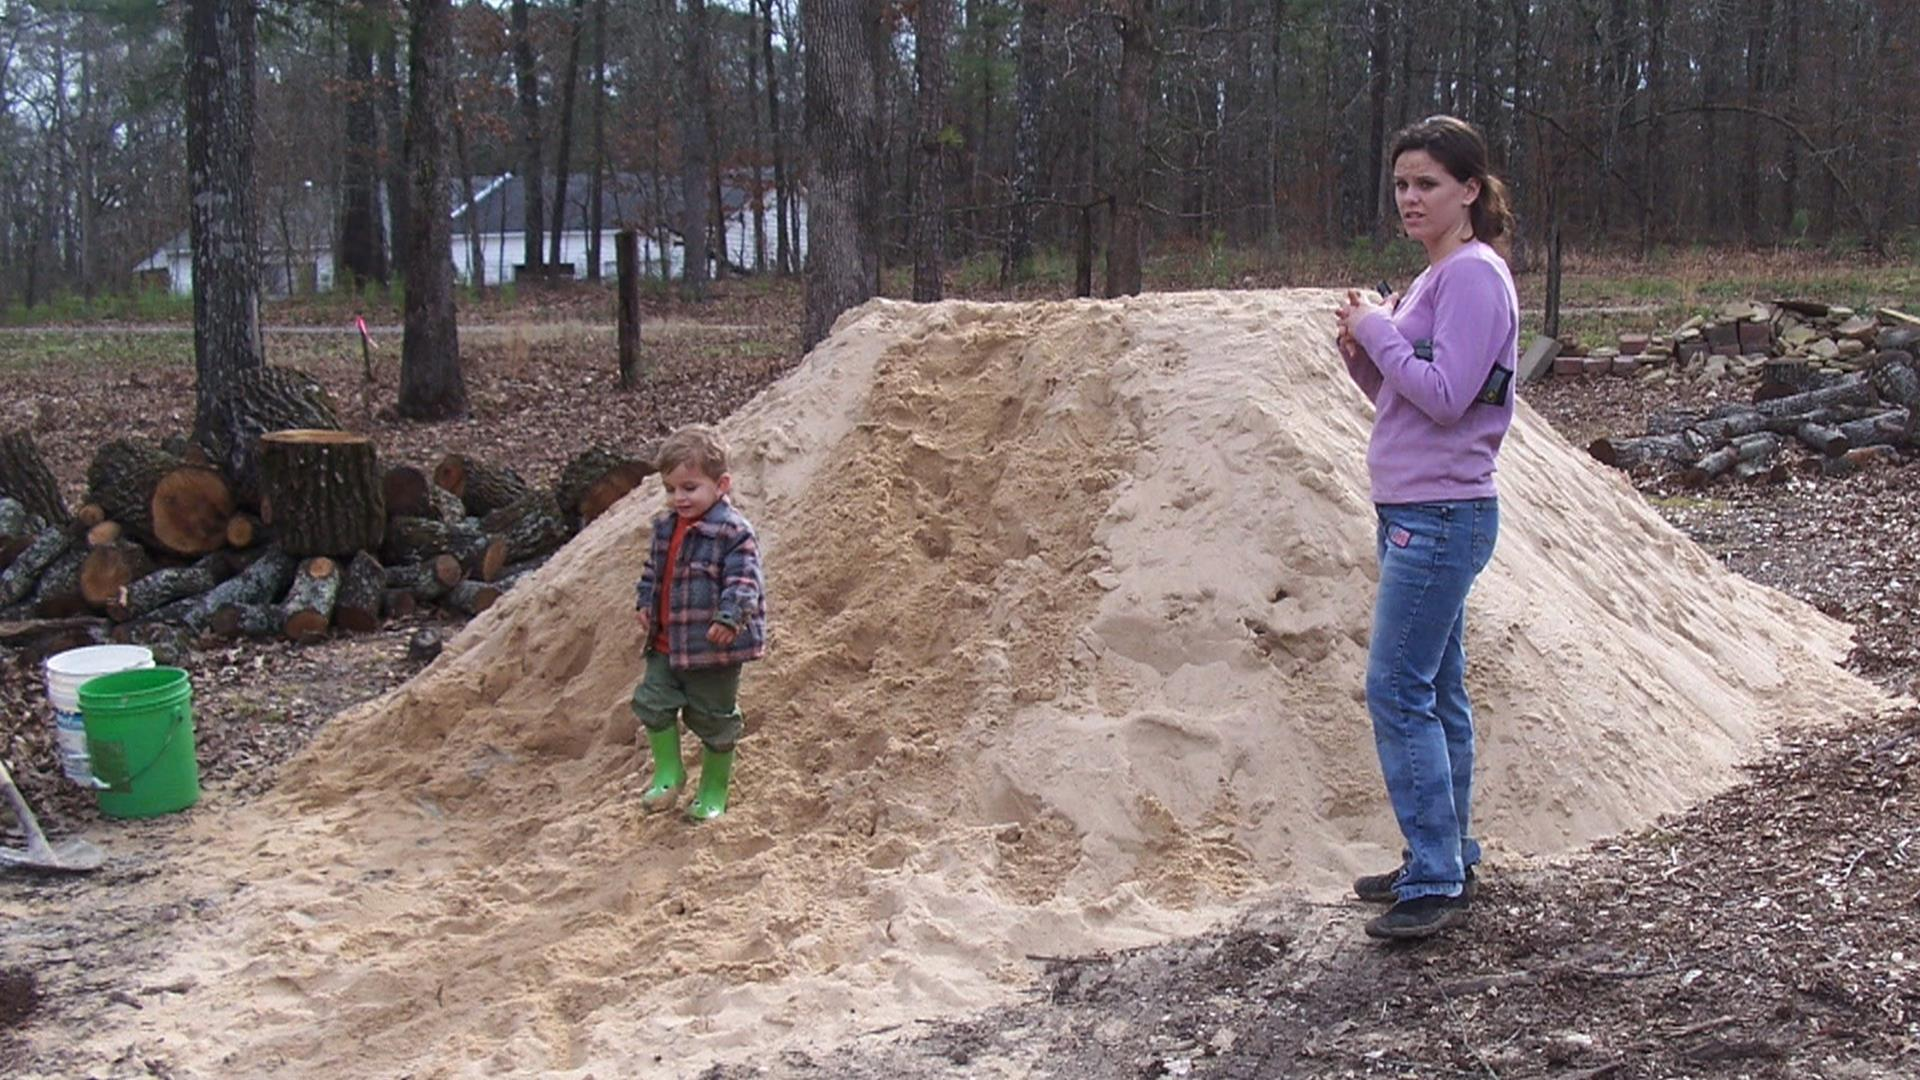 Single Mom Builds 3 500 Square Foot Home By Watching Youtube Tutorials